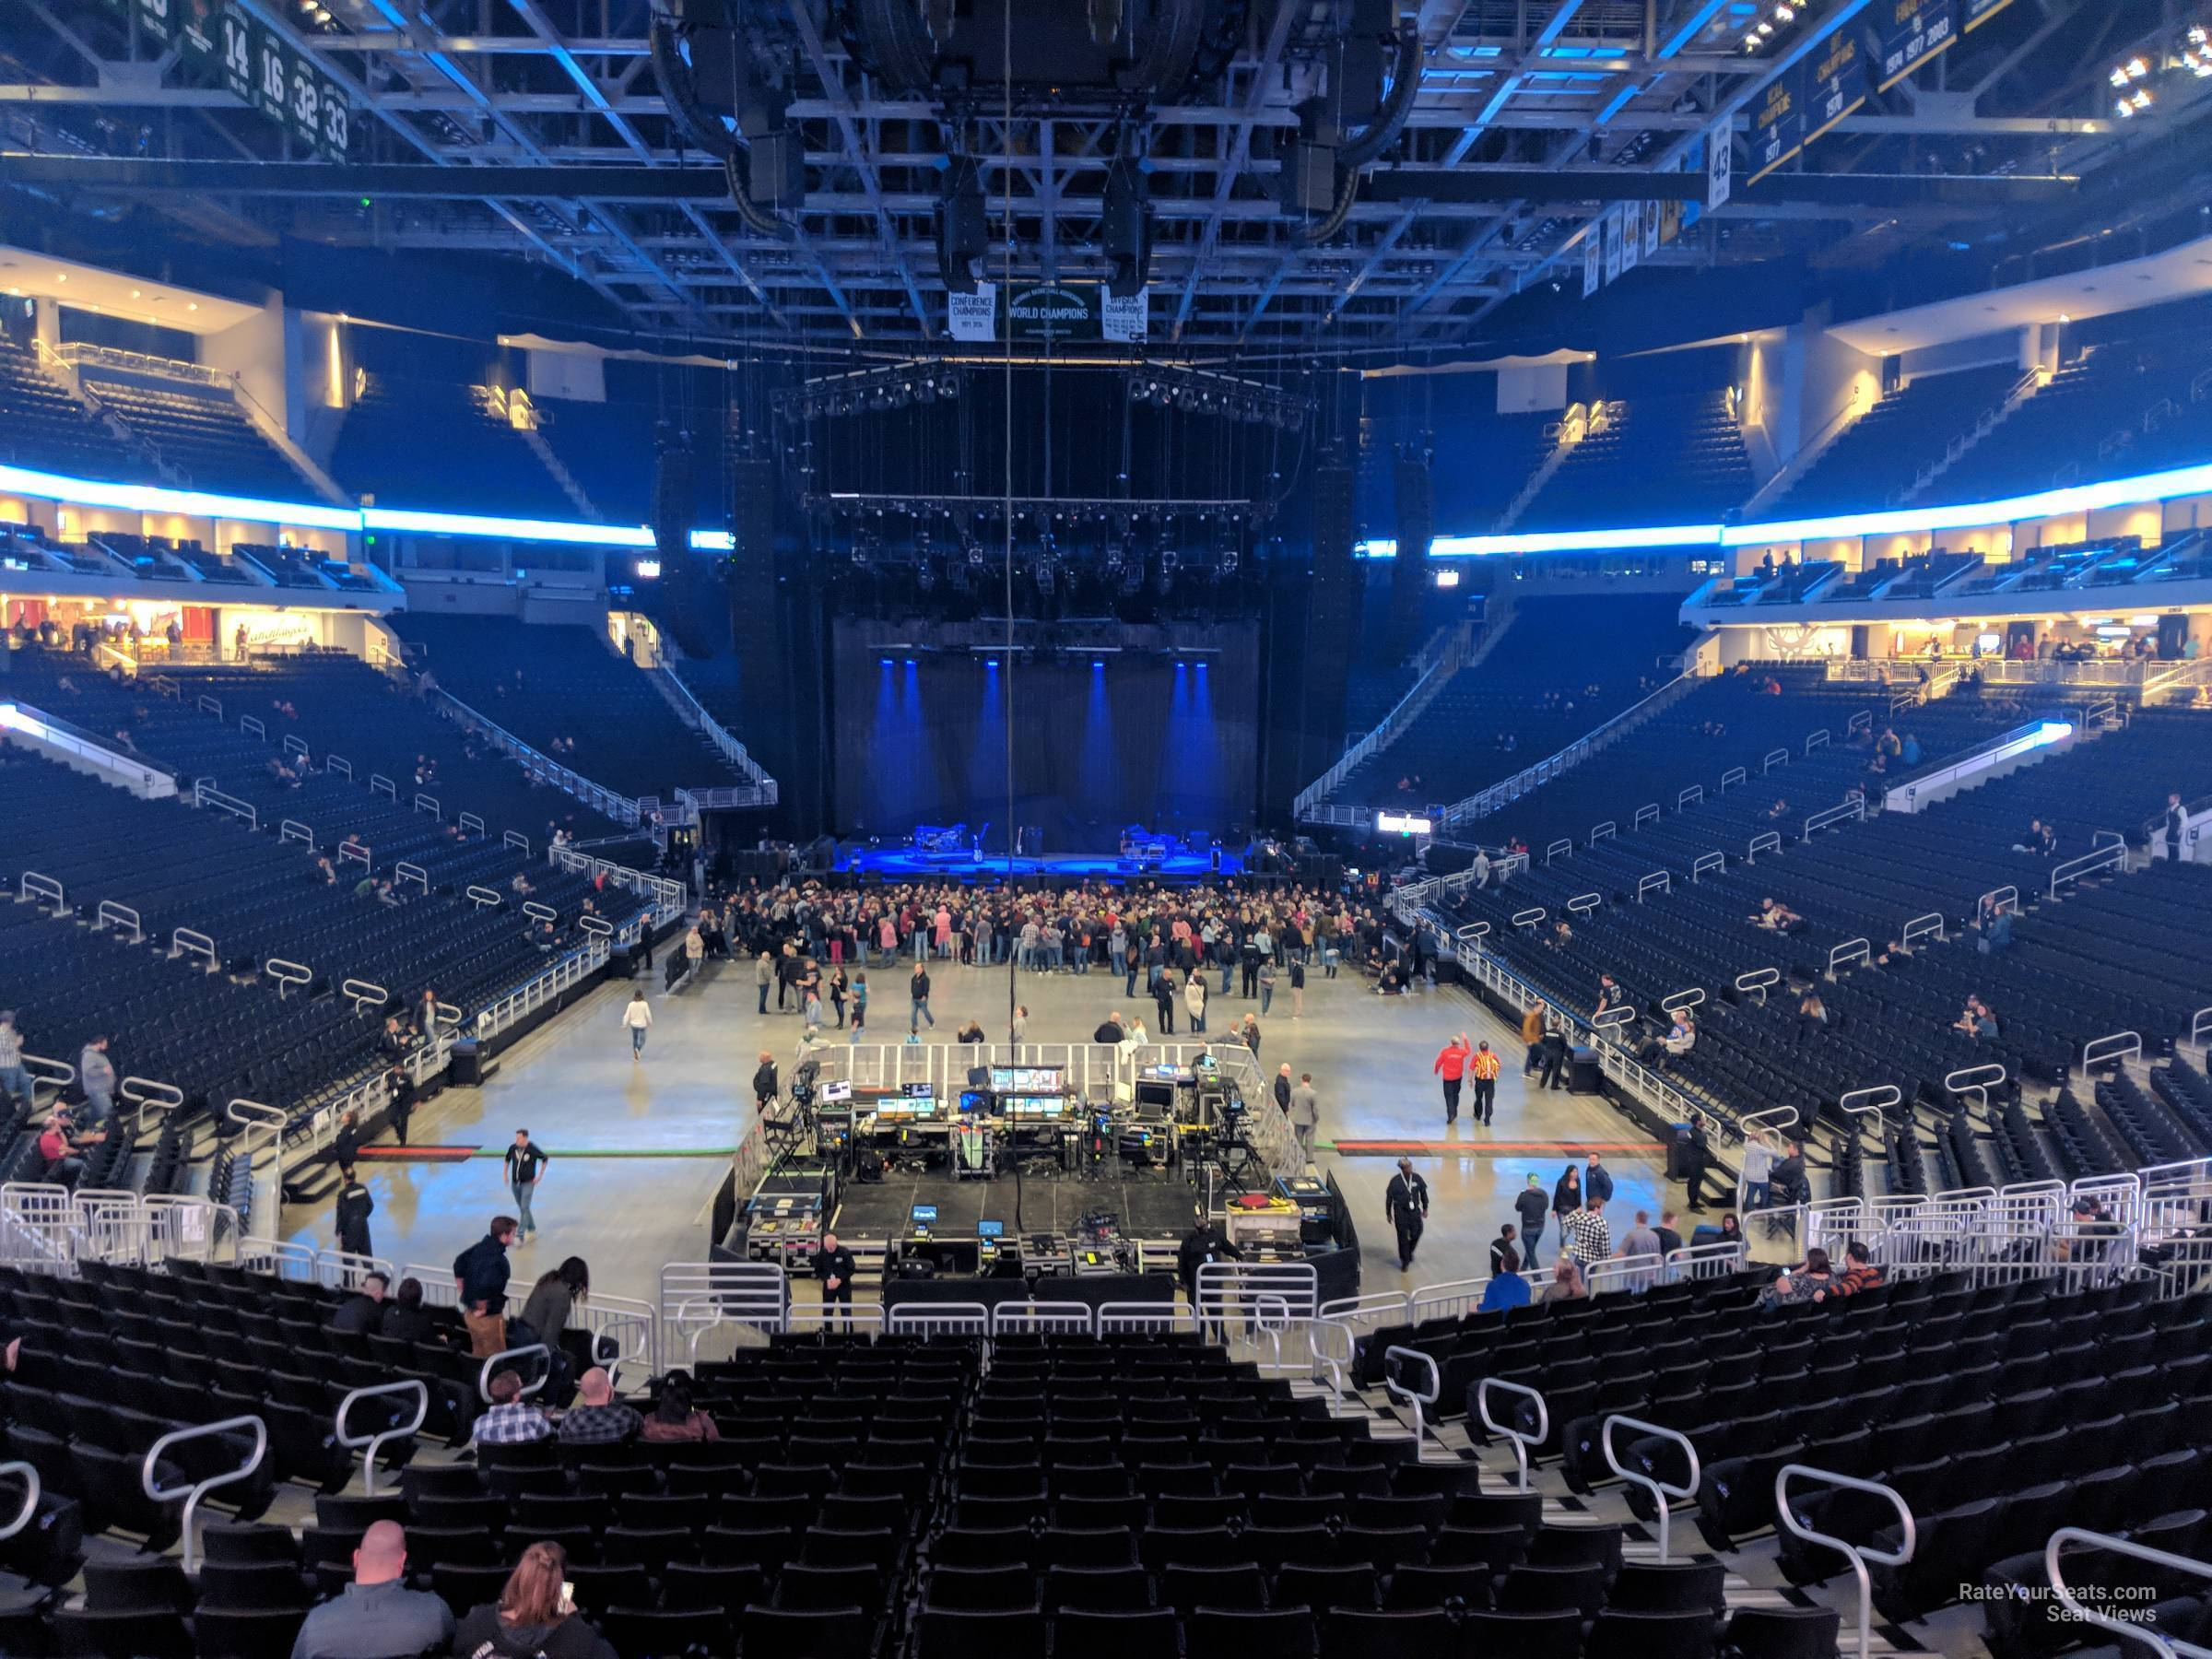 Fiserv Forum Section 101 Concert Seating - RateYourSeats.com